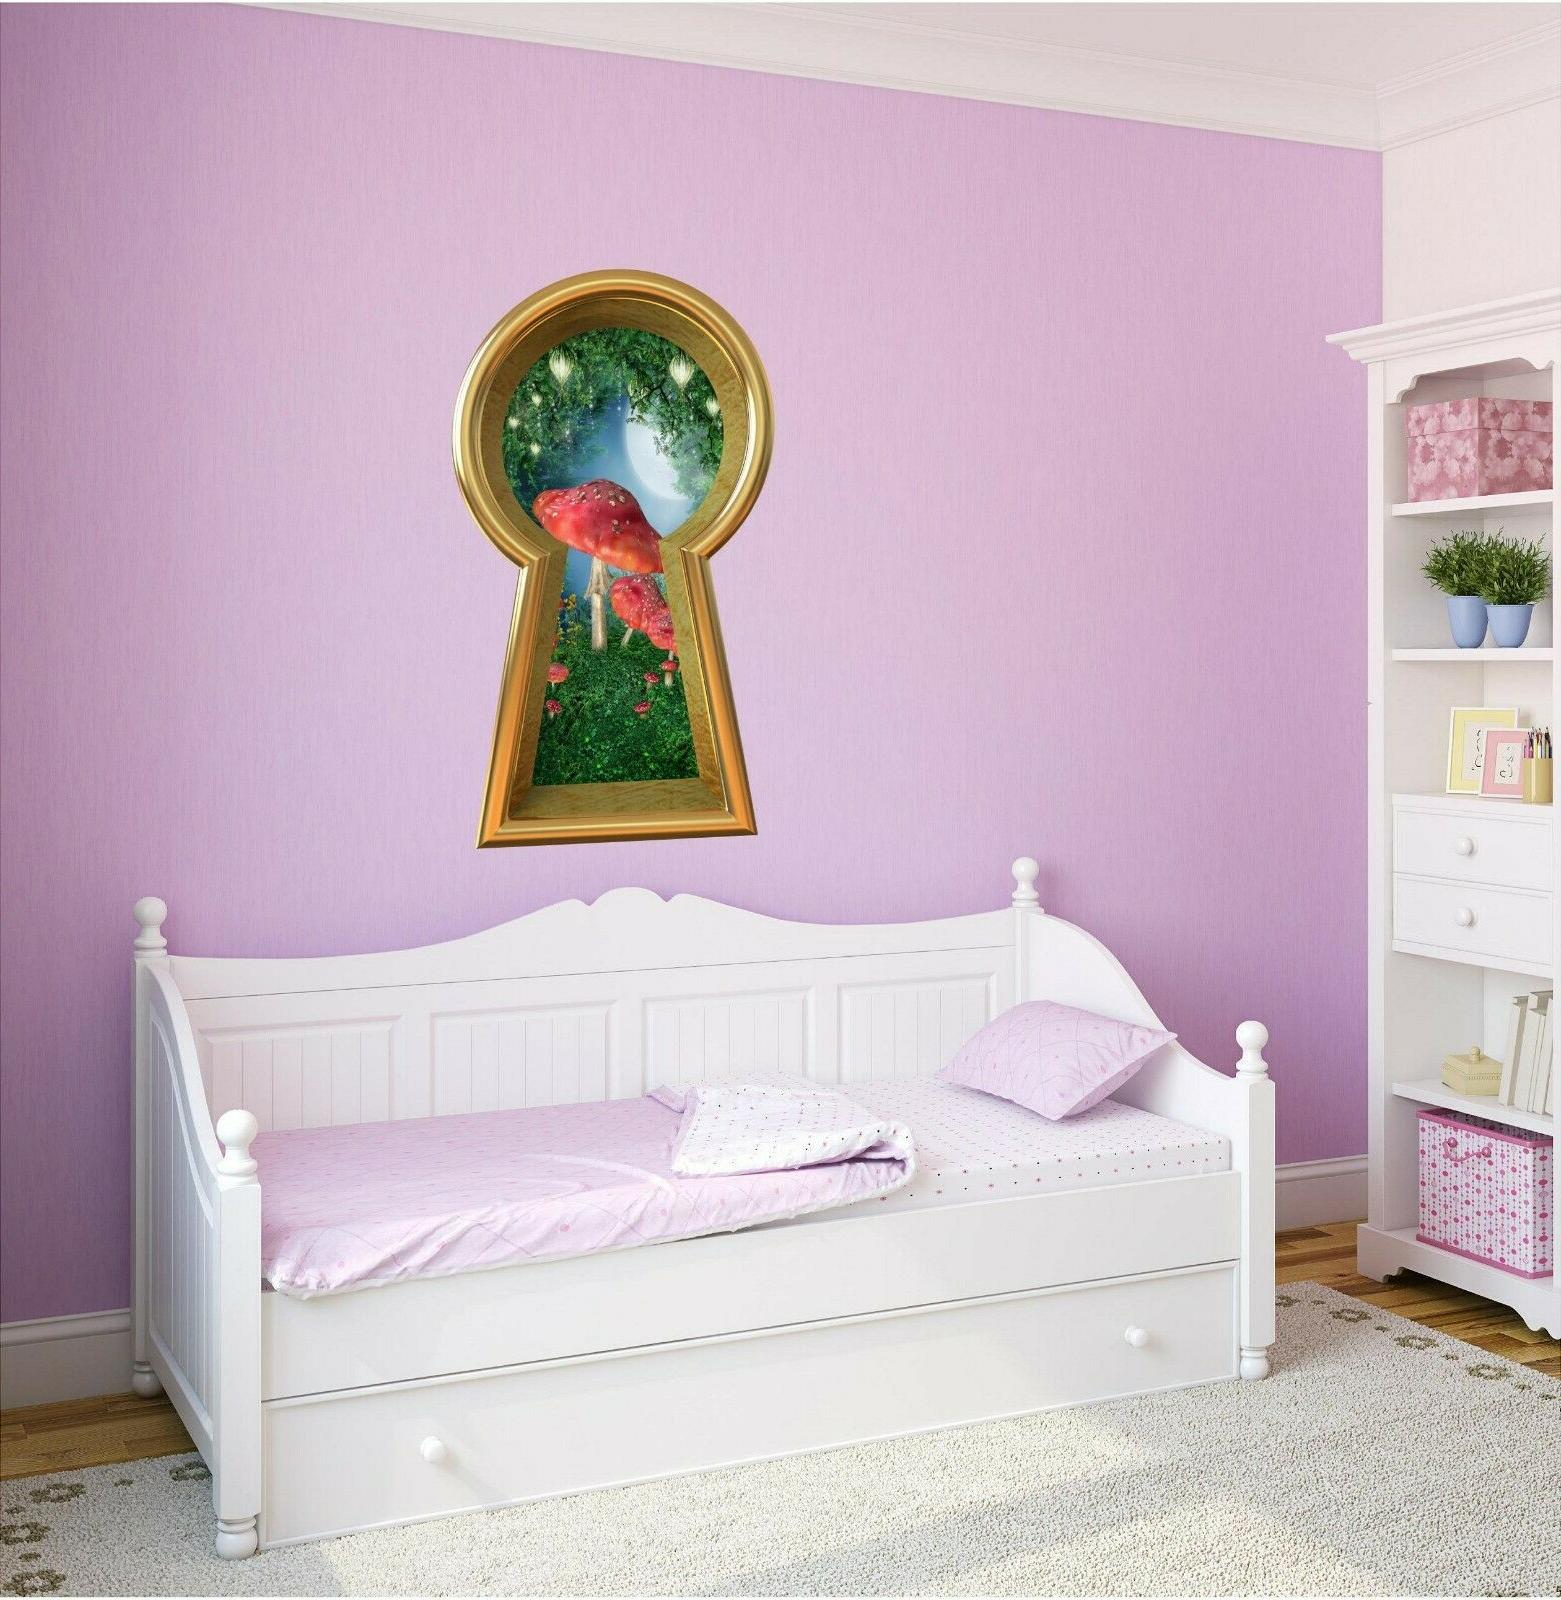 3d keyhole wall decal enchanted lantern forest